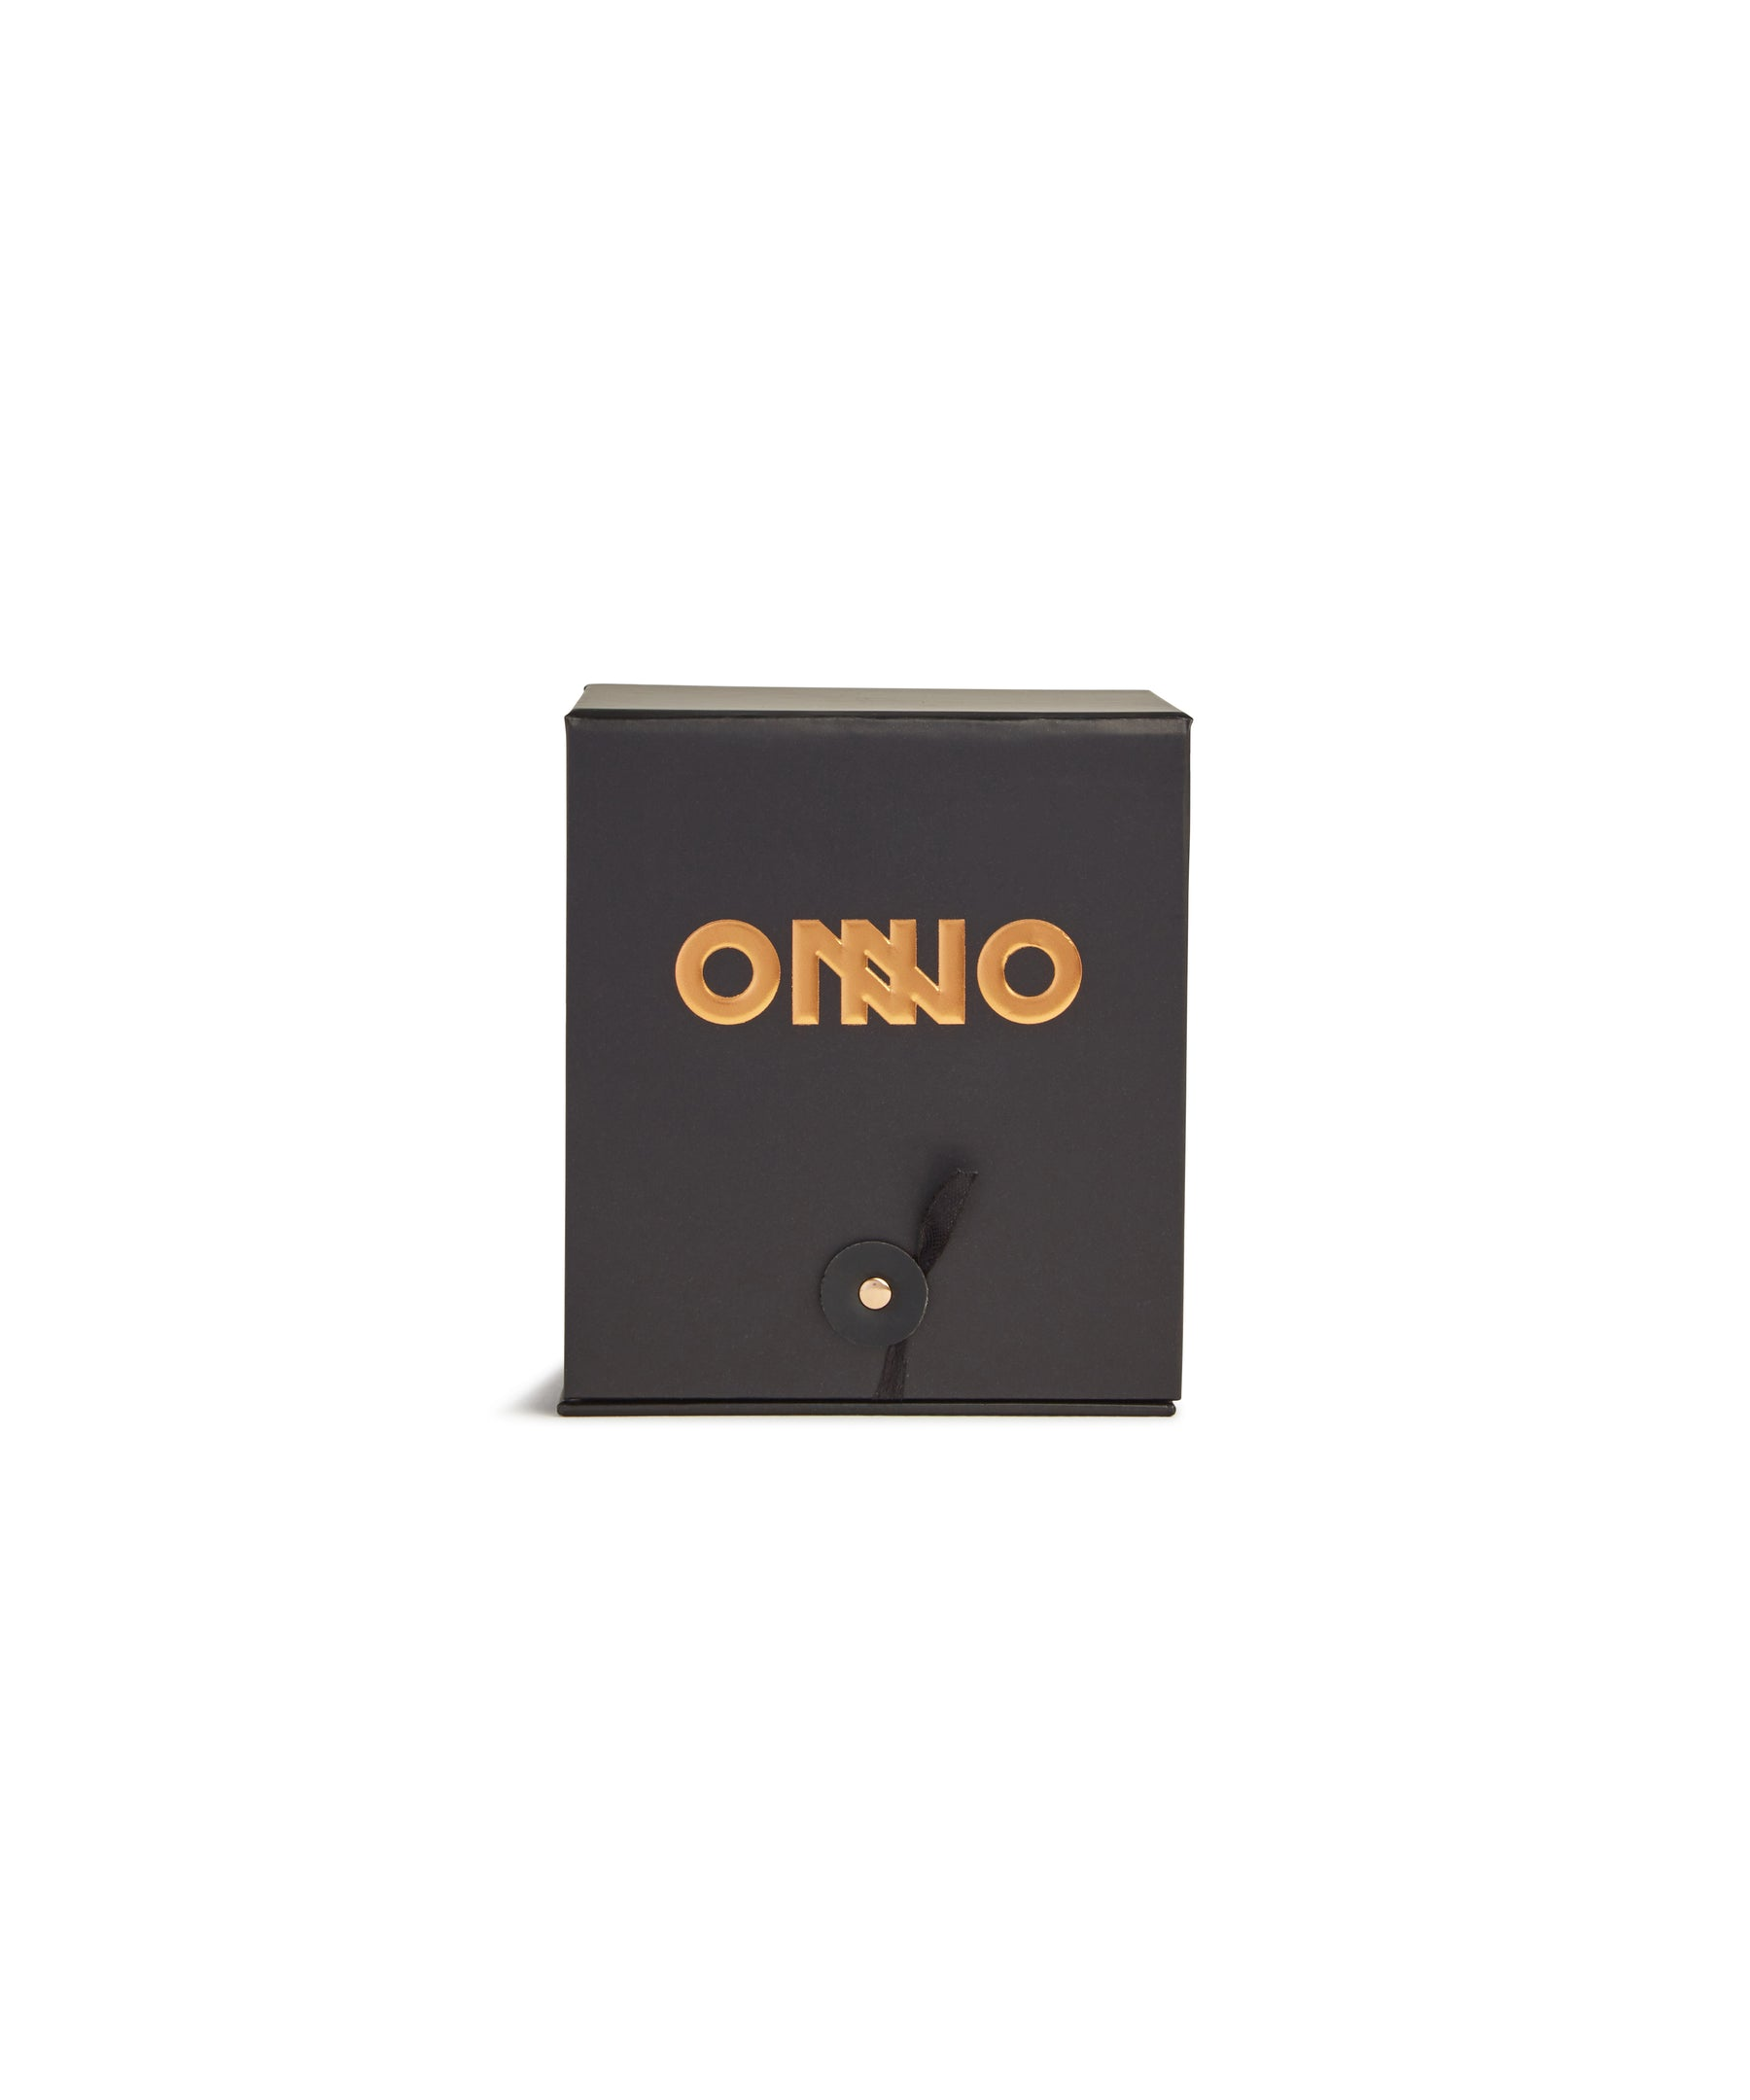 Horizon Candle by Onno